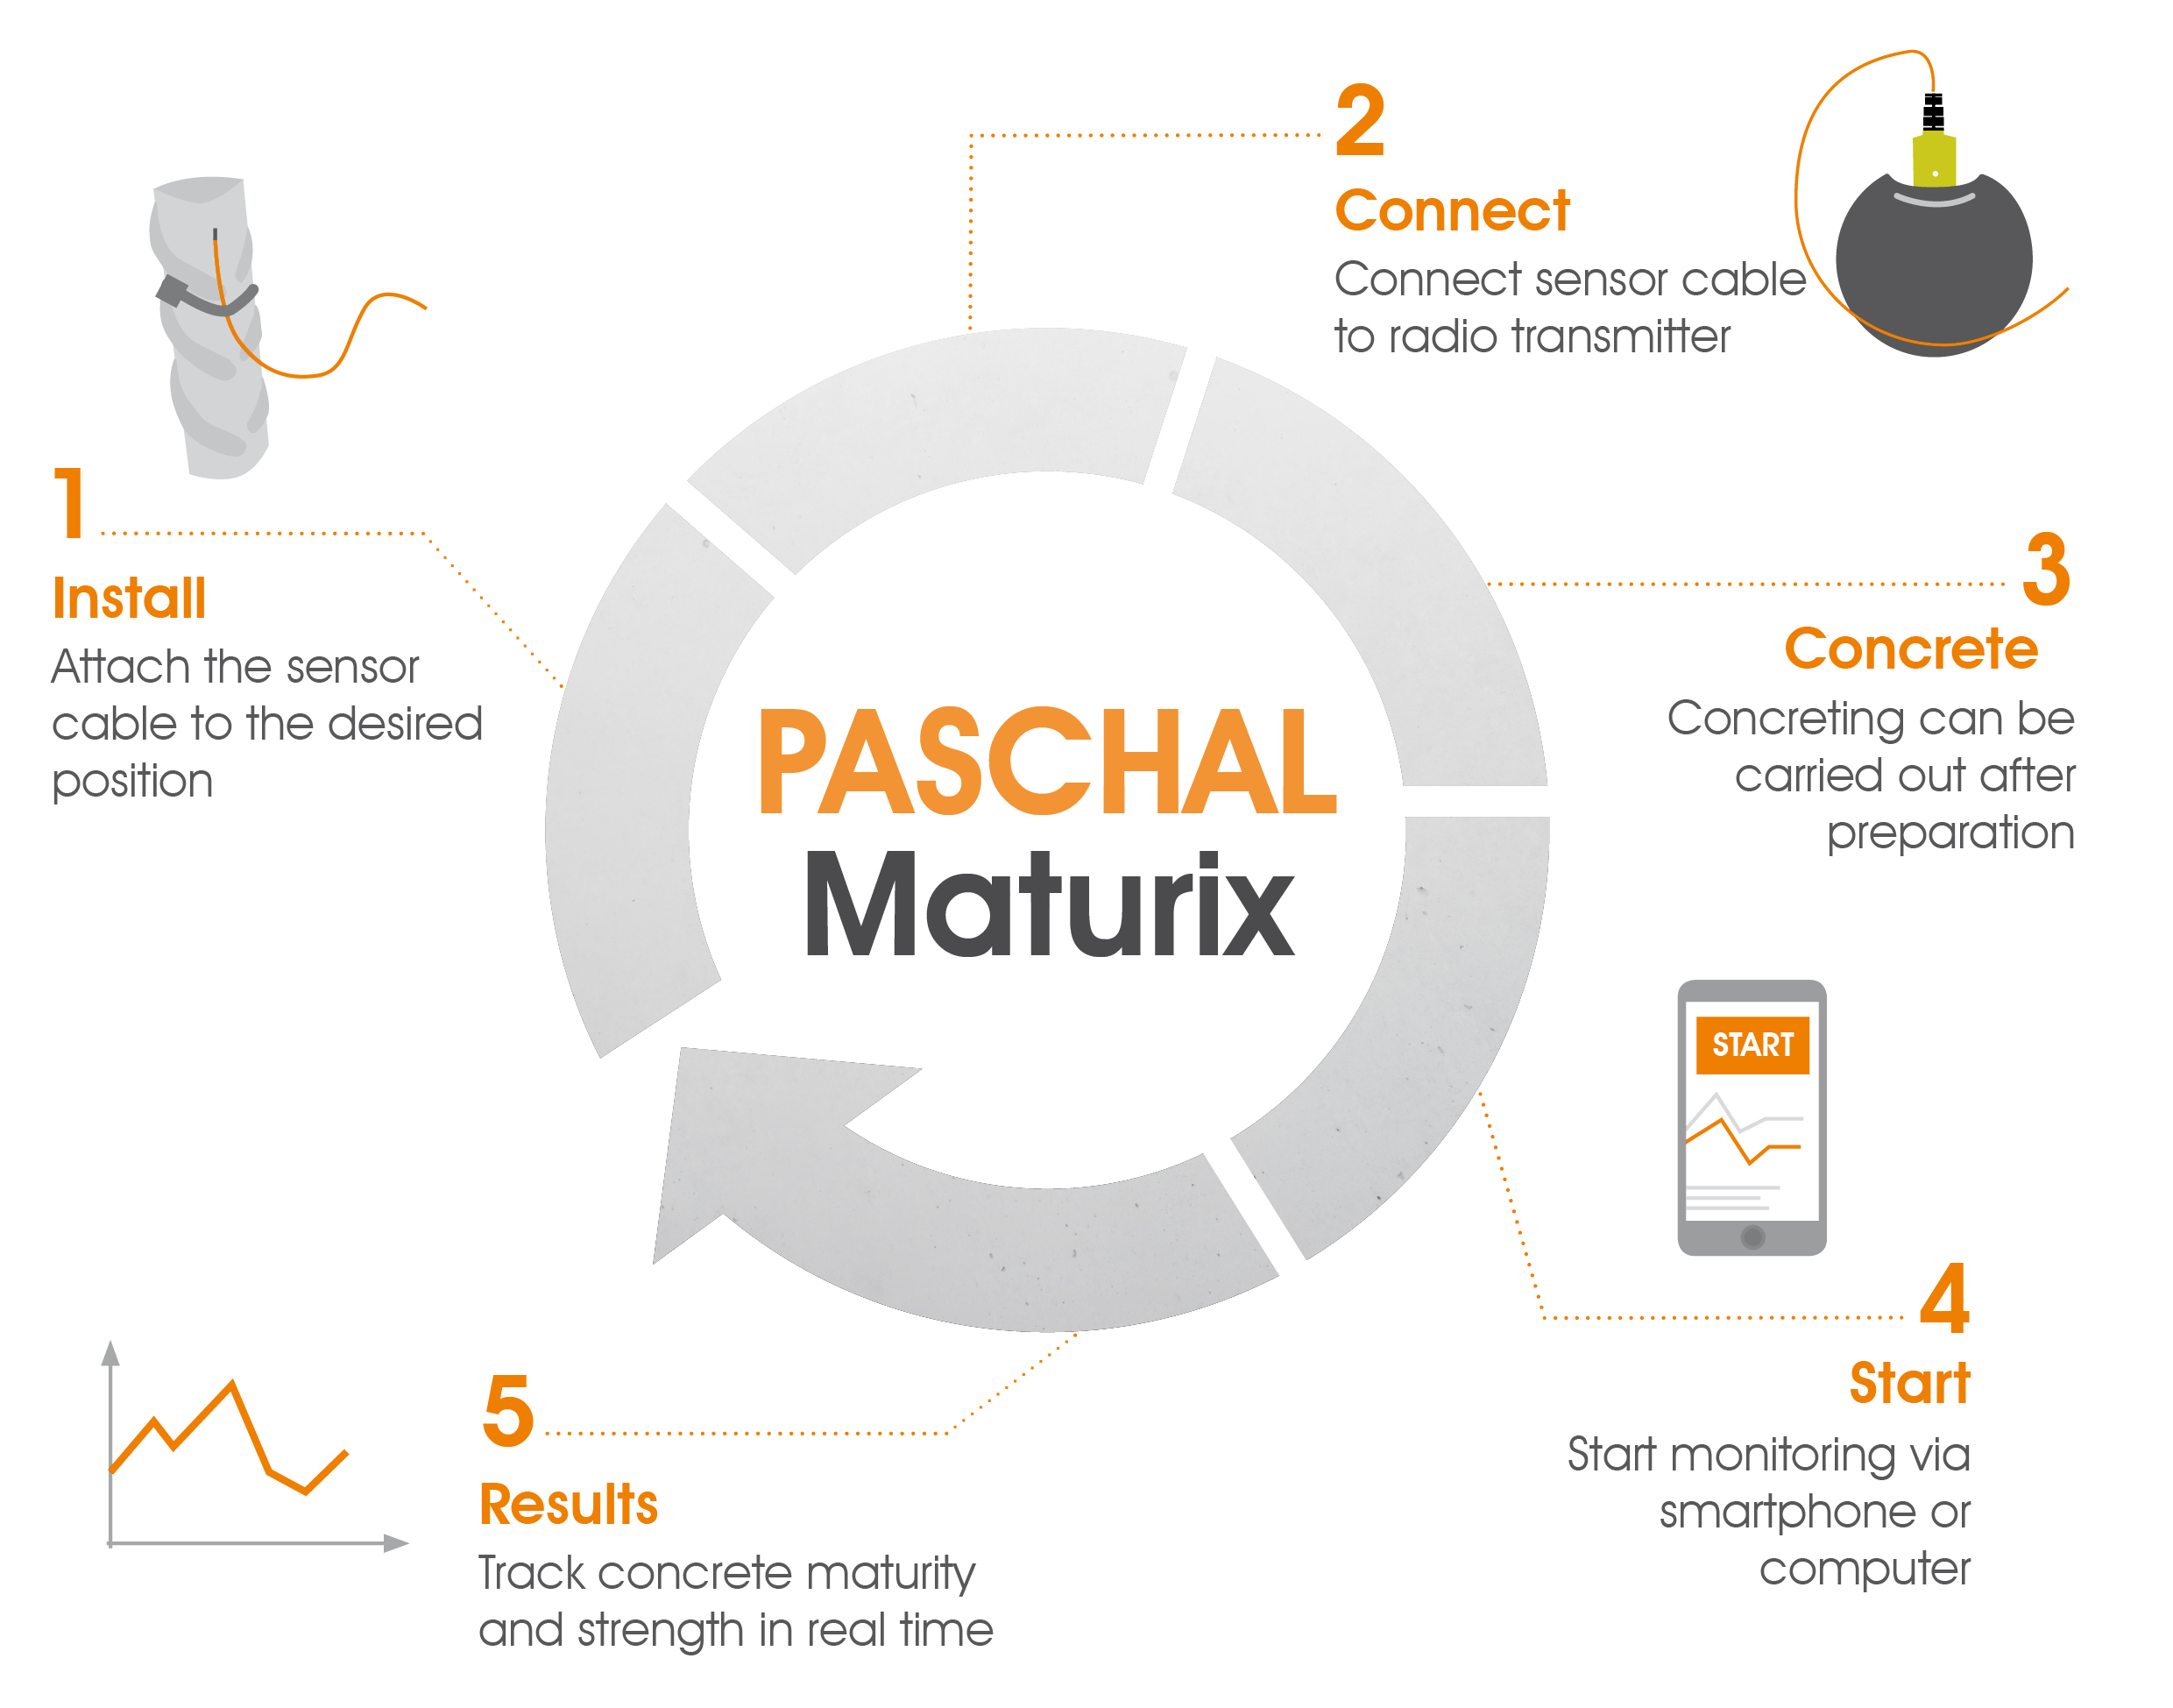 Functionality of PASCHAL Maturix